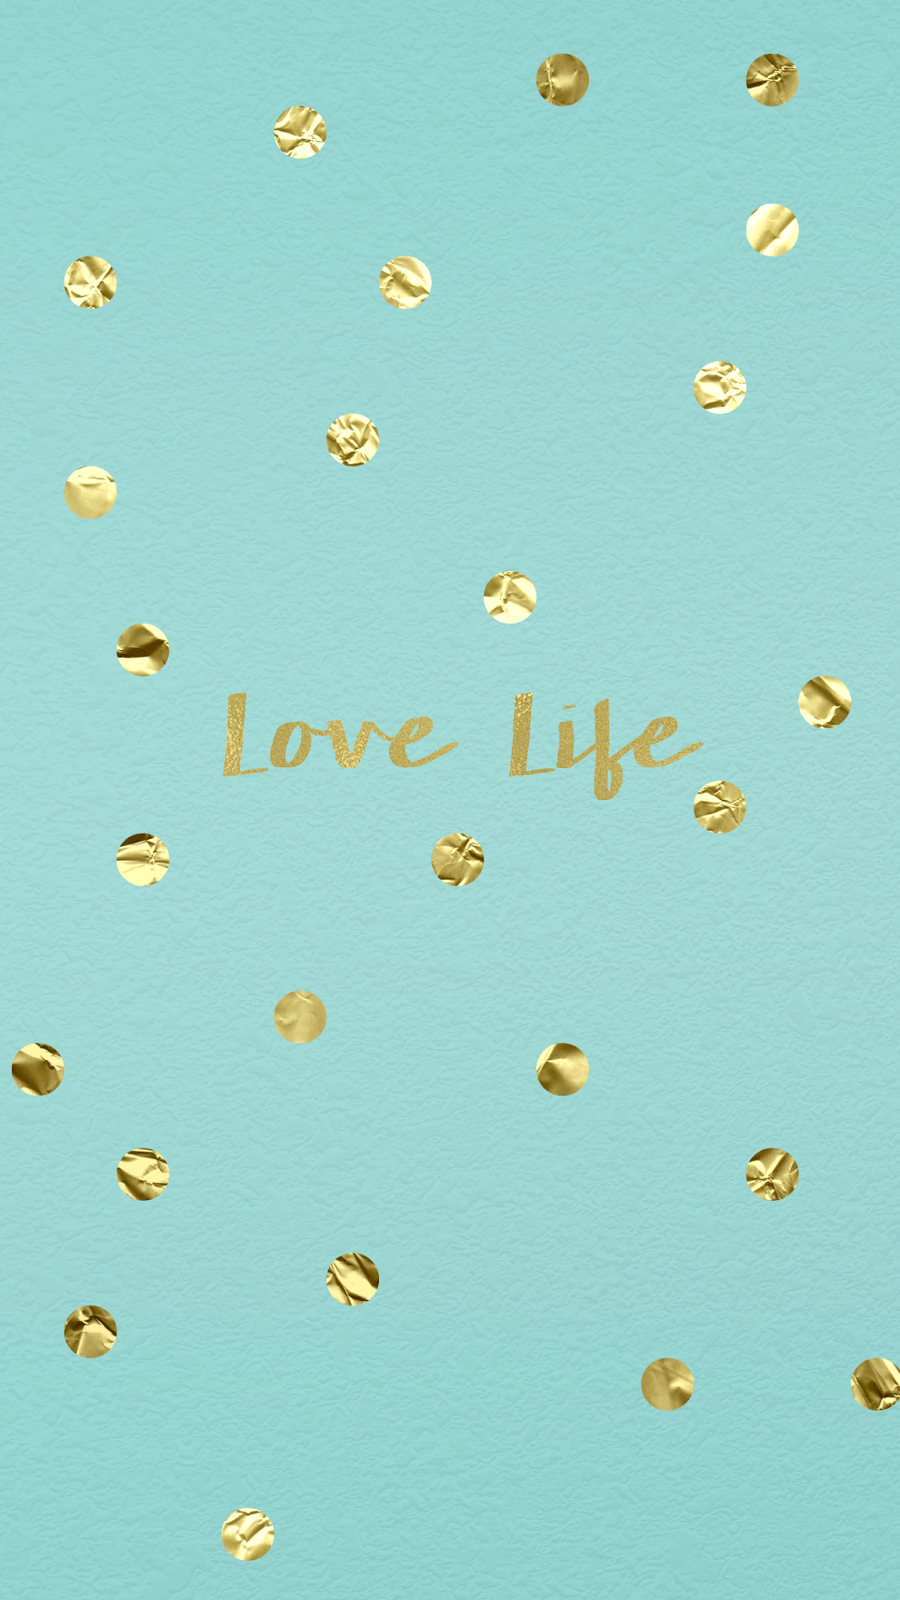 wallpaper, background, hd, iphone, gold, confetti, tiffany, blue ...